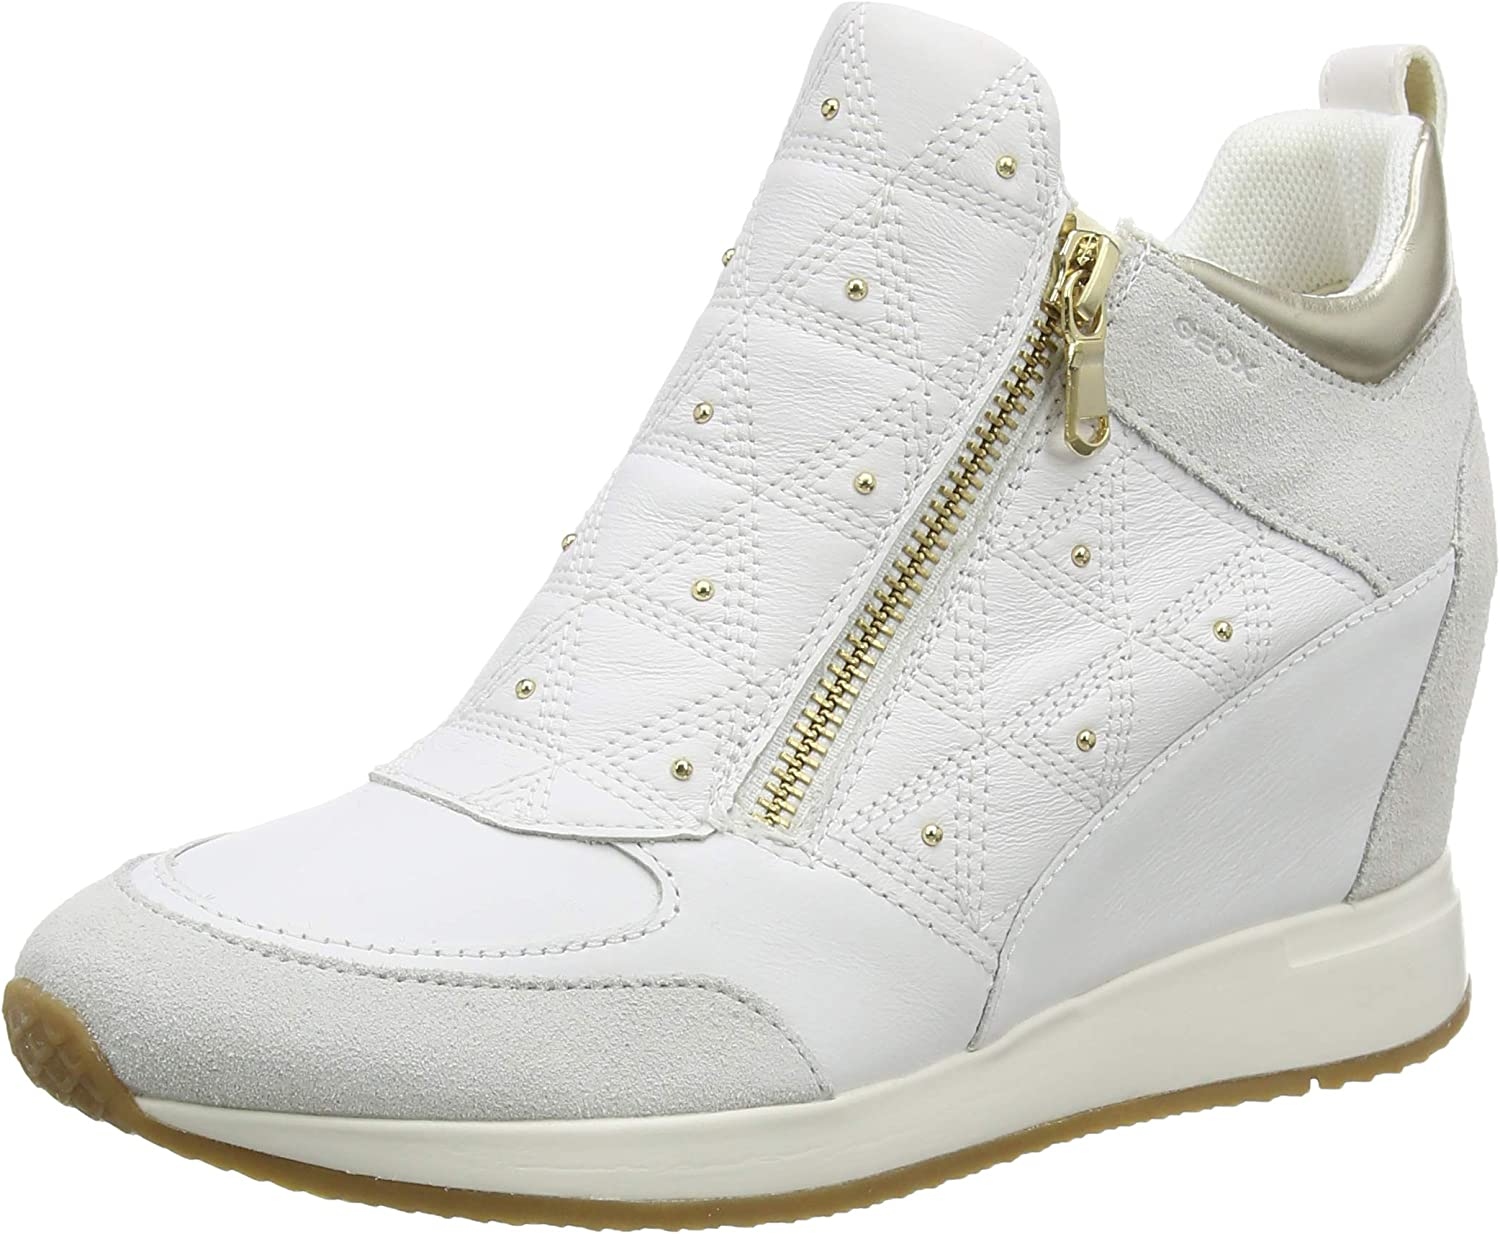 Geox D Nydame D, Zapatillas Mujer, 41 EU